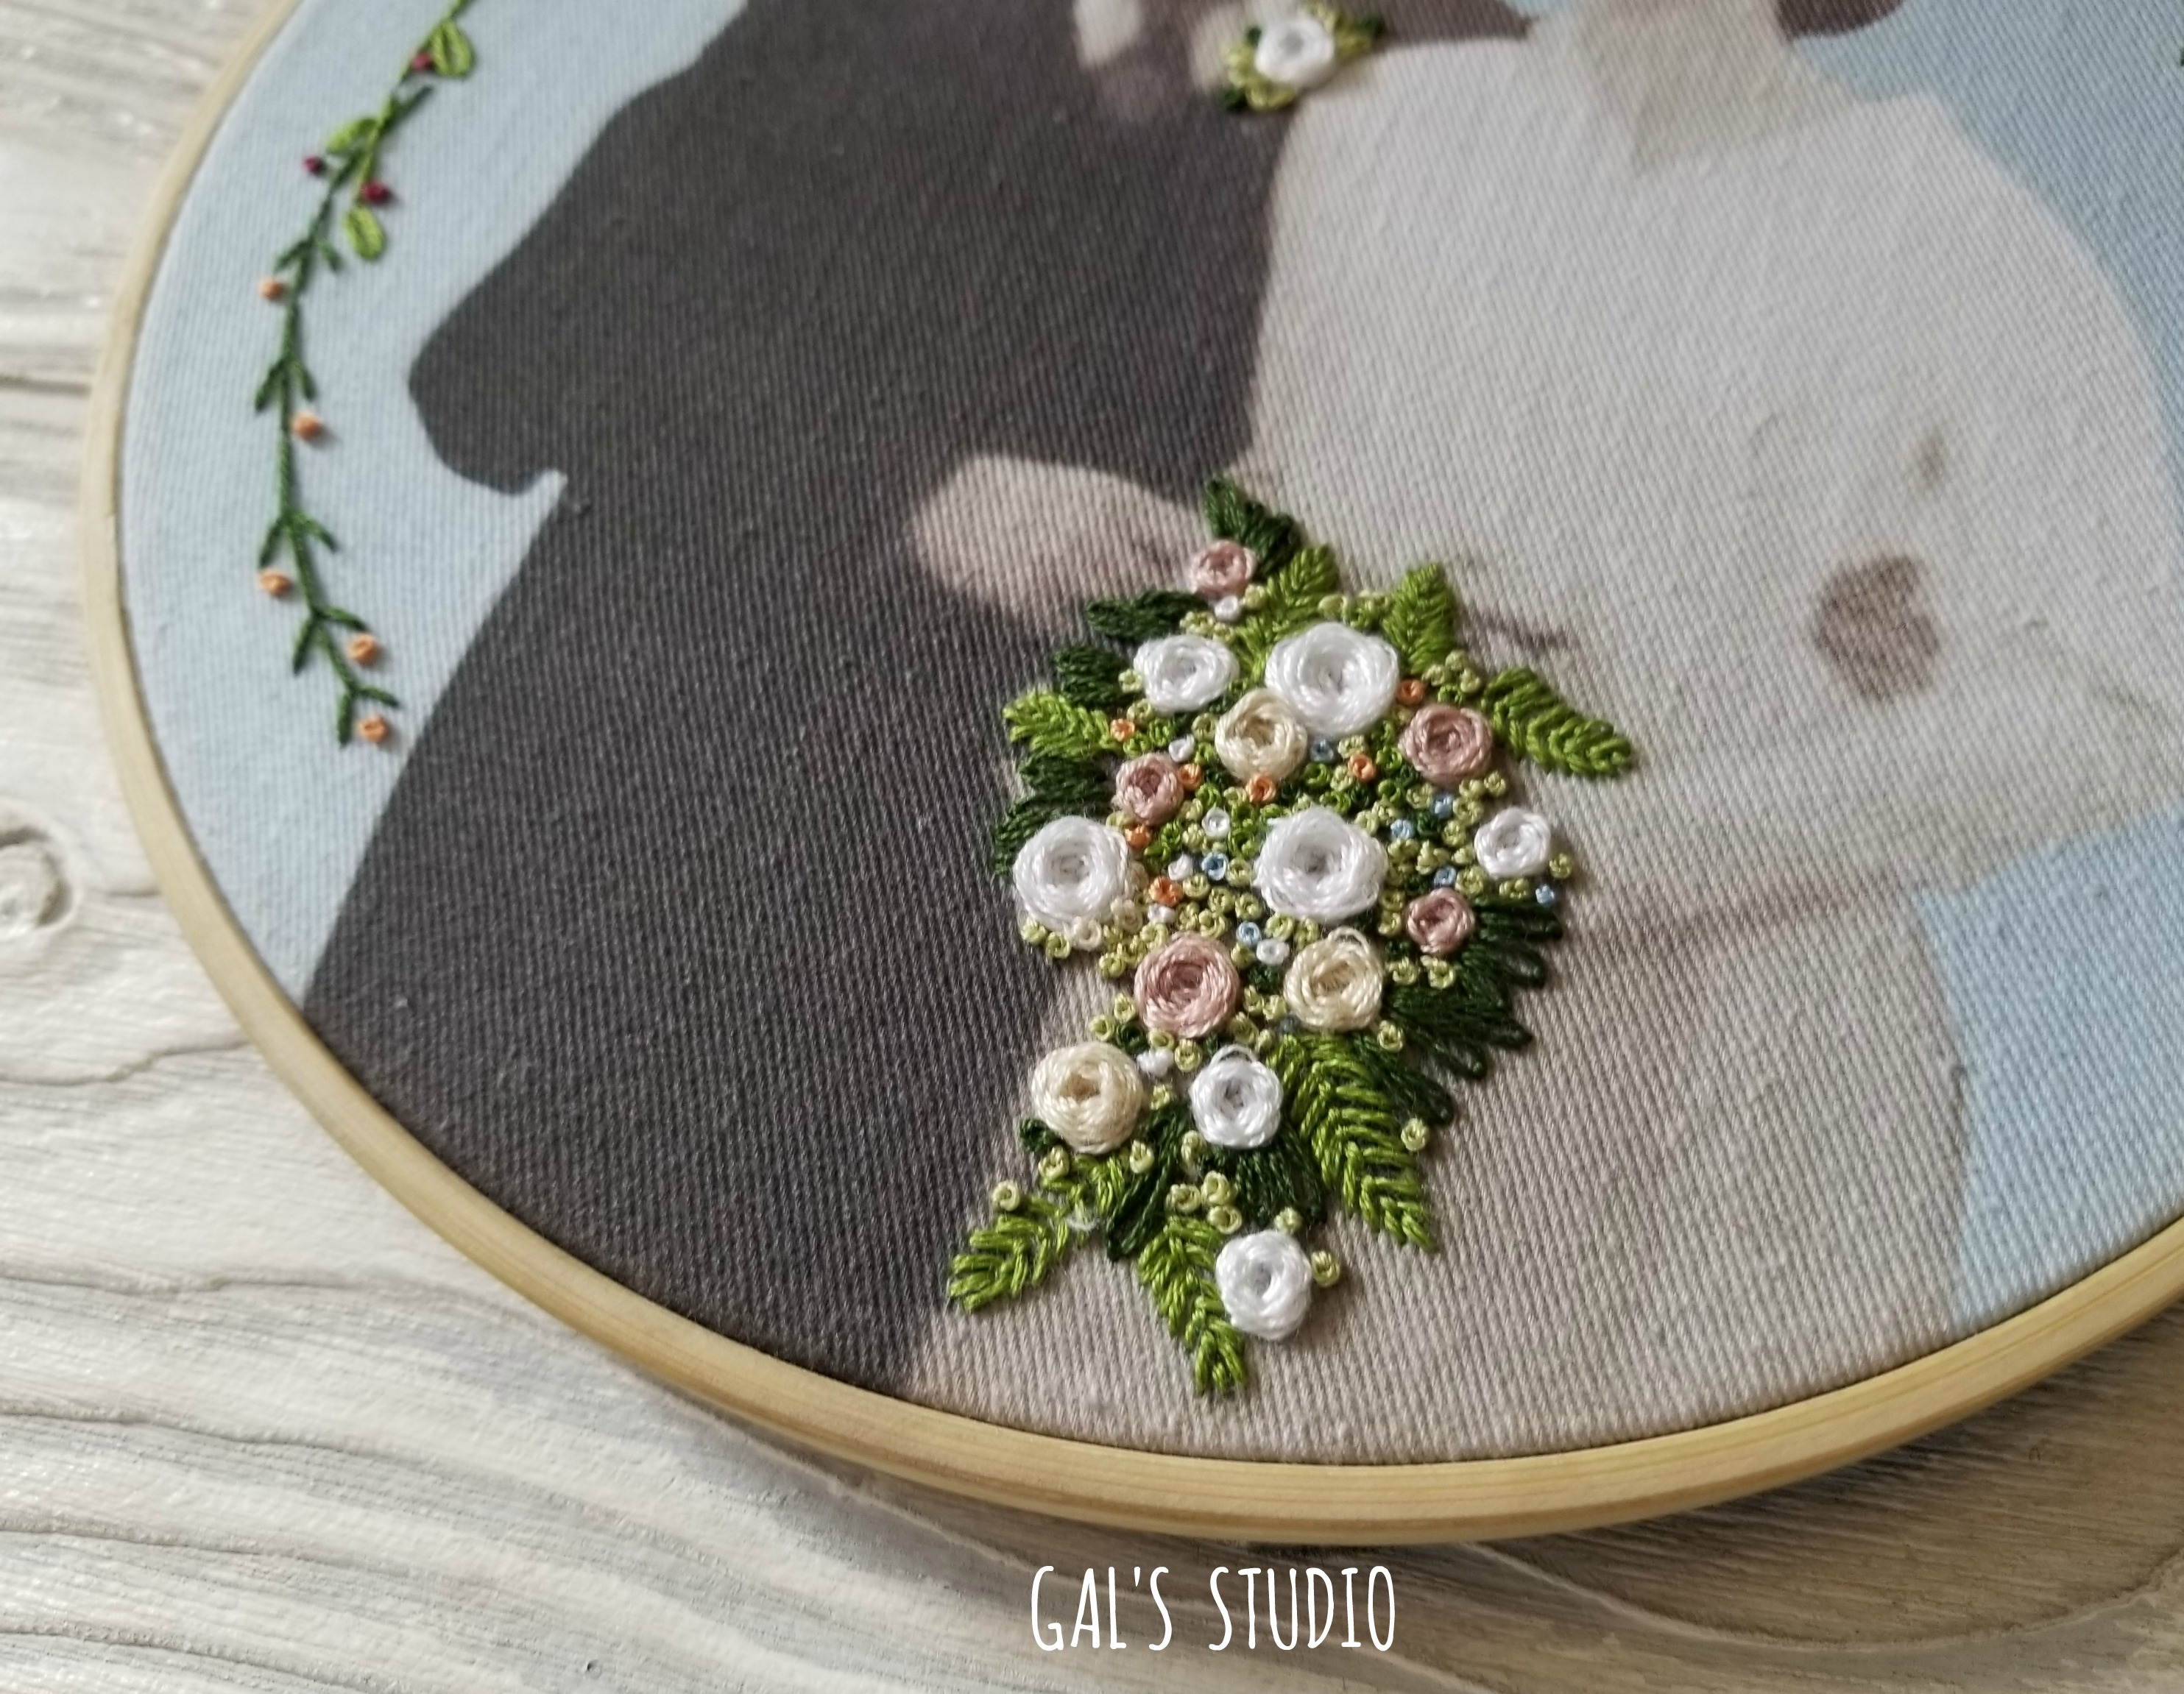 galstudio wedding embroidery